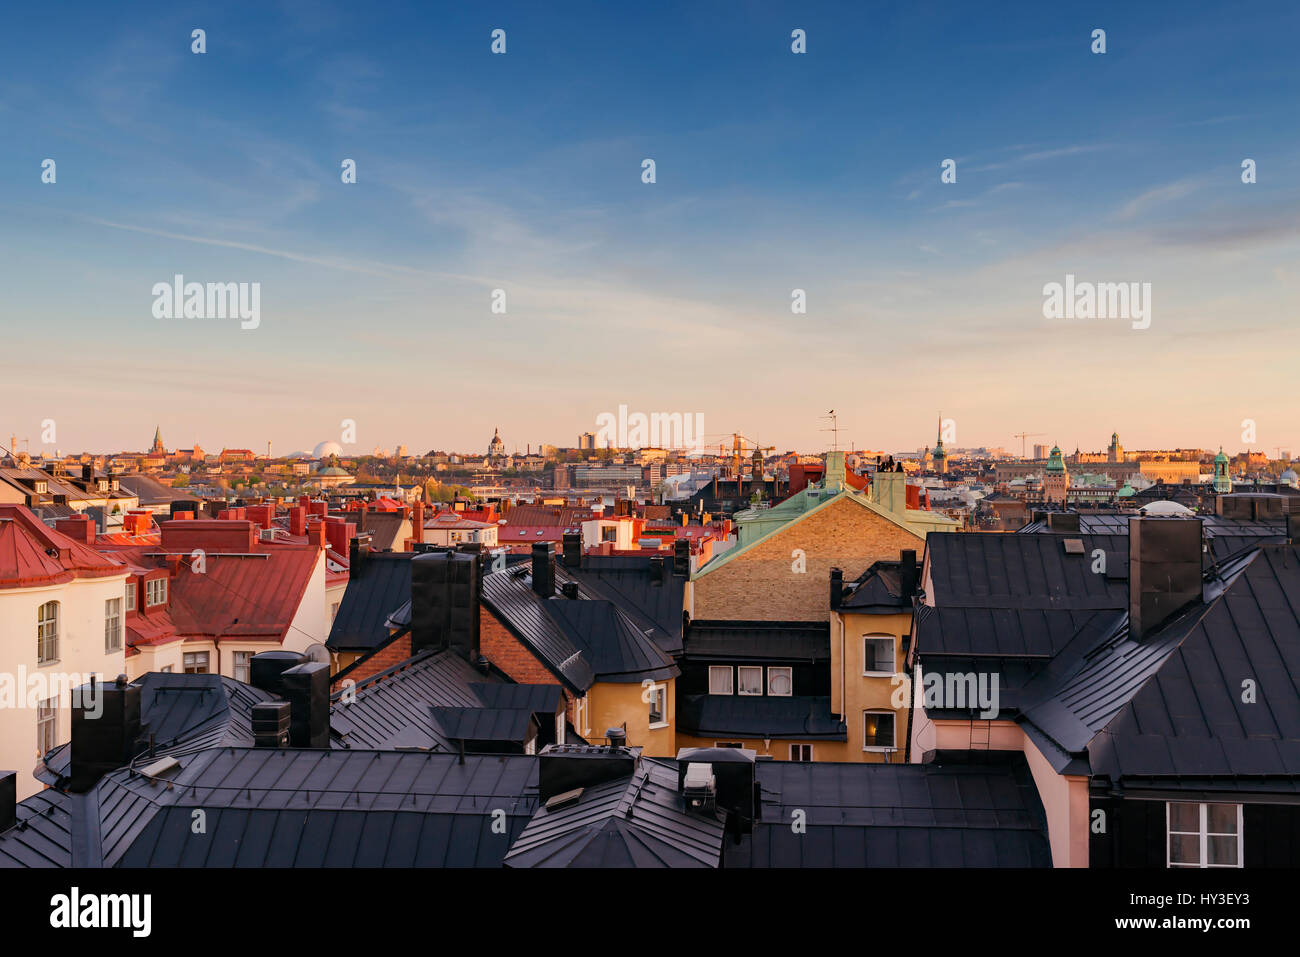 Sweden, Stockholm, Ostermalm, Cityscape seen from above rooftops - Stock Image